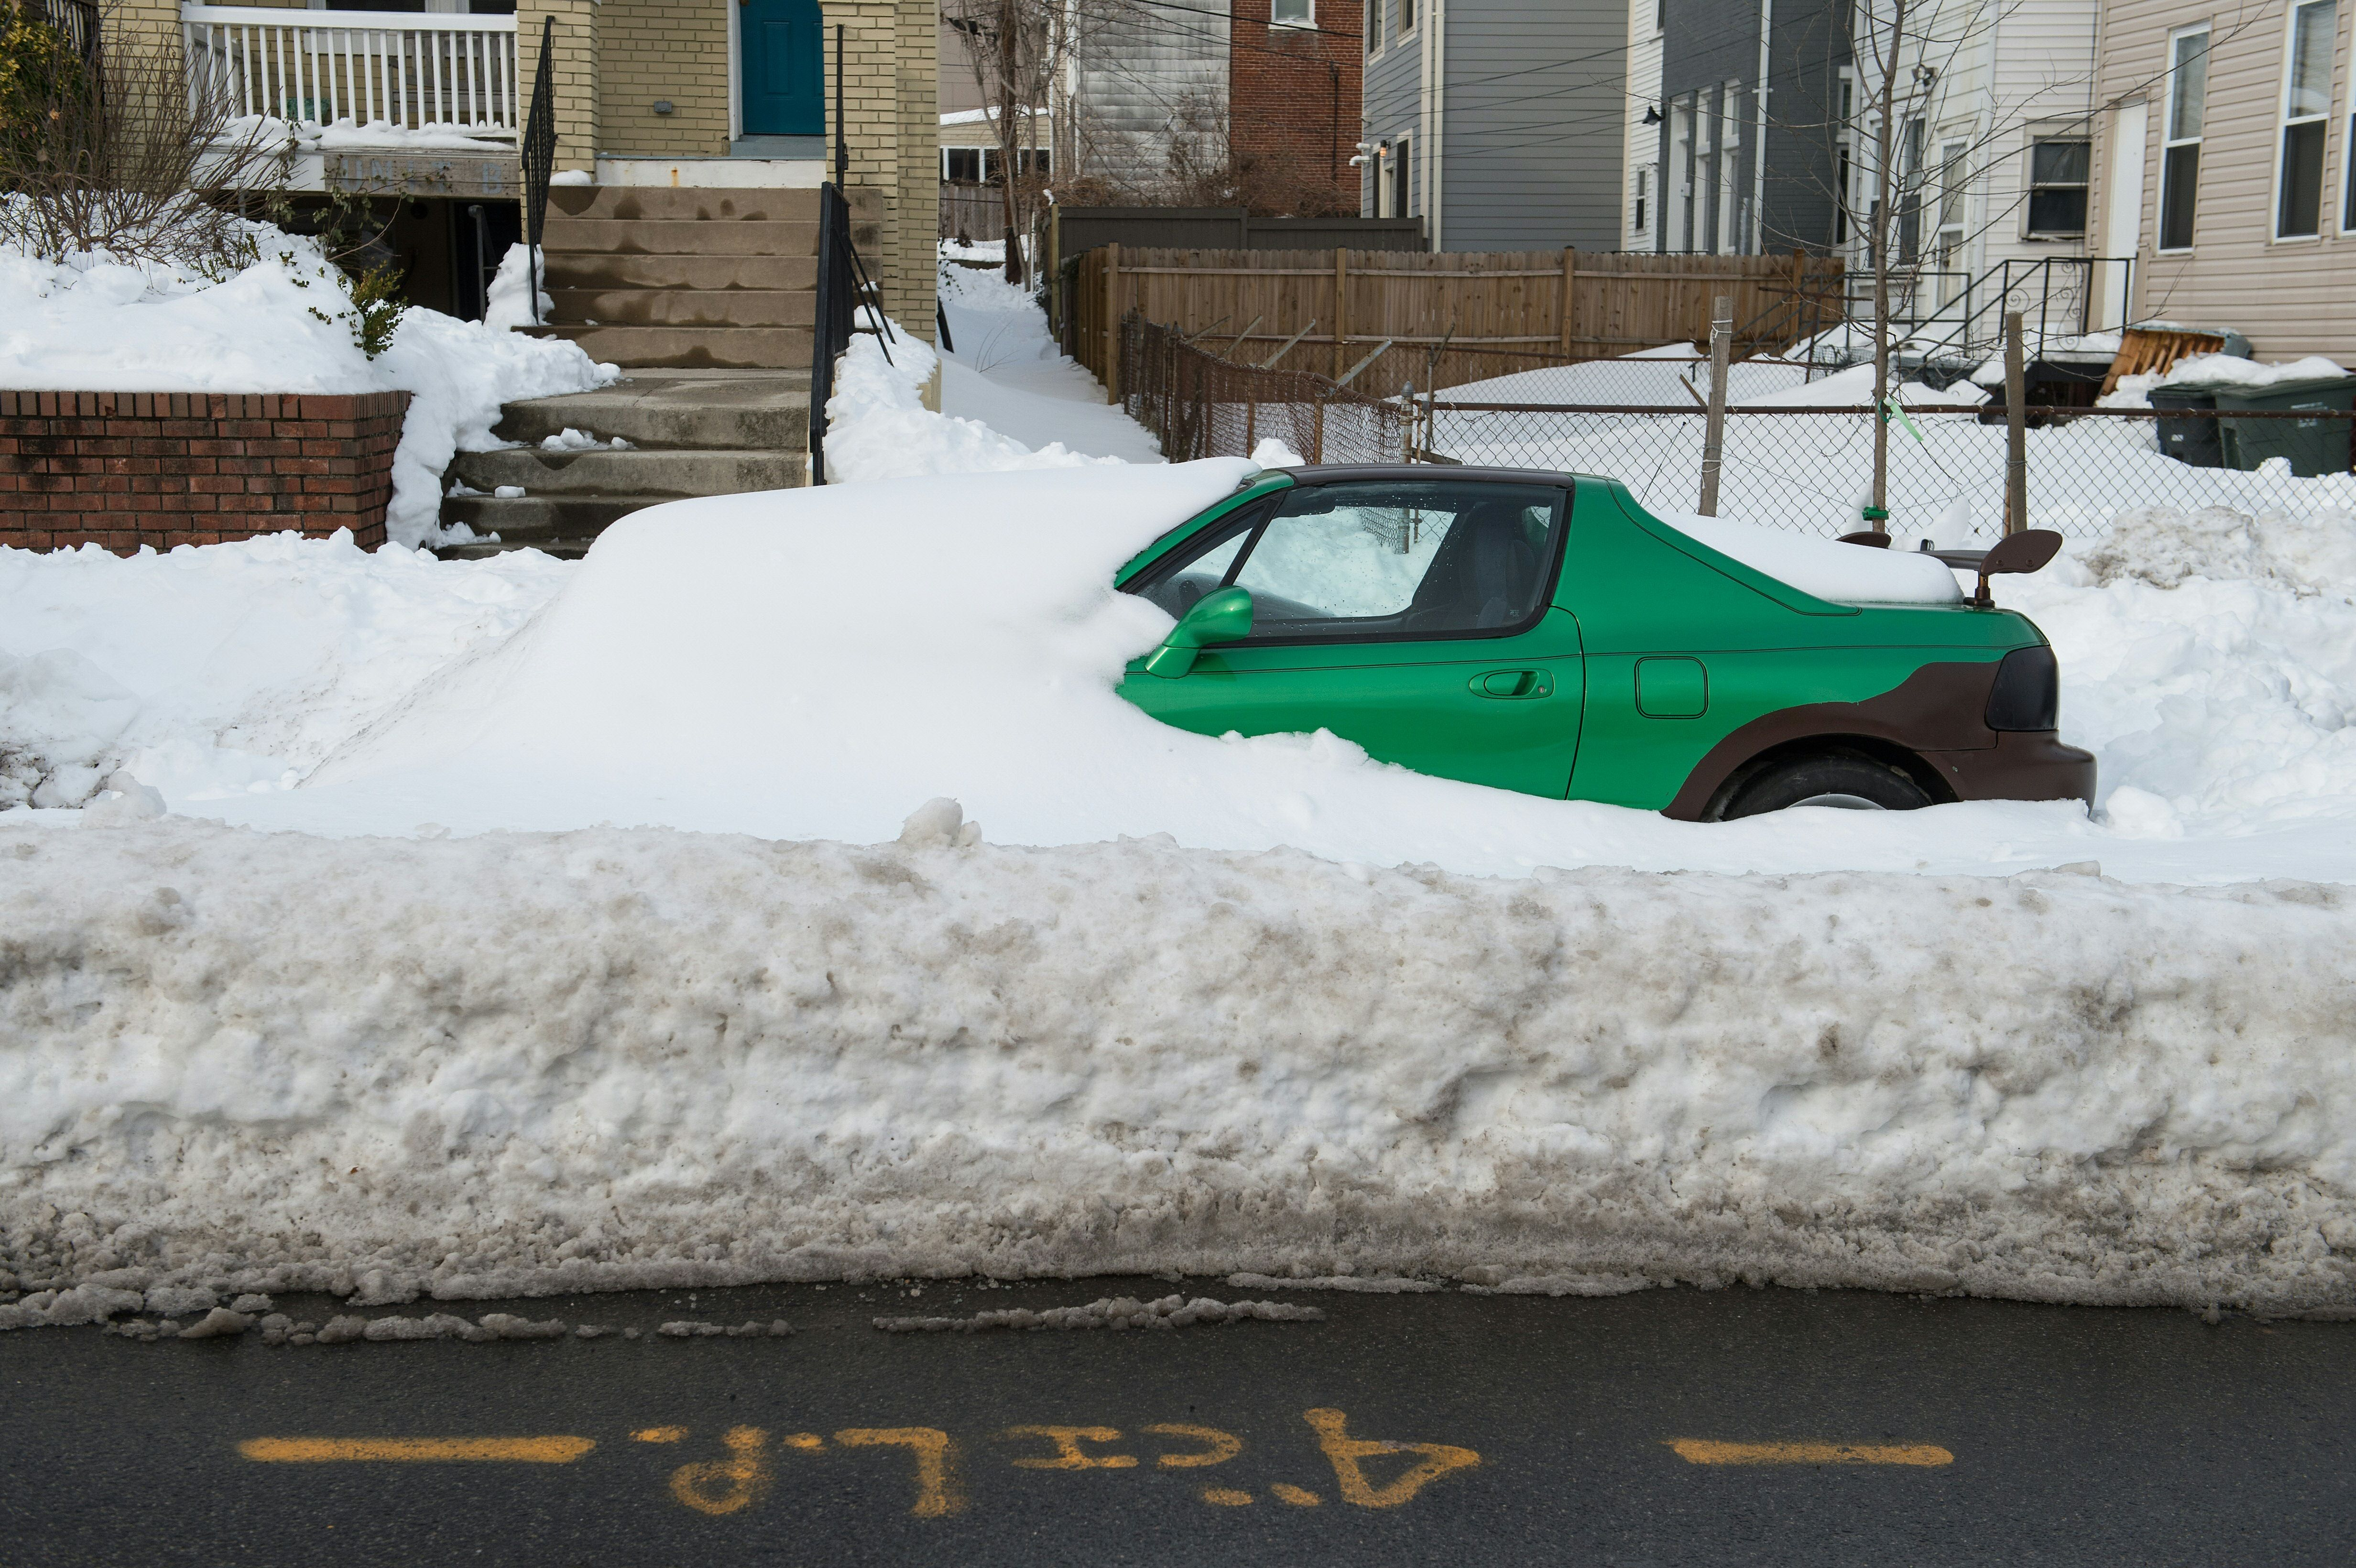 A car is stuck in snow along a street in Washington, DC, on Jan. 26.